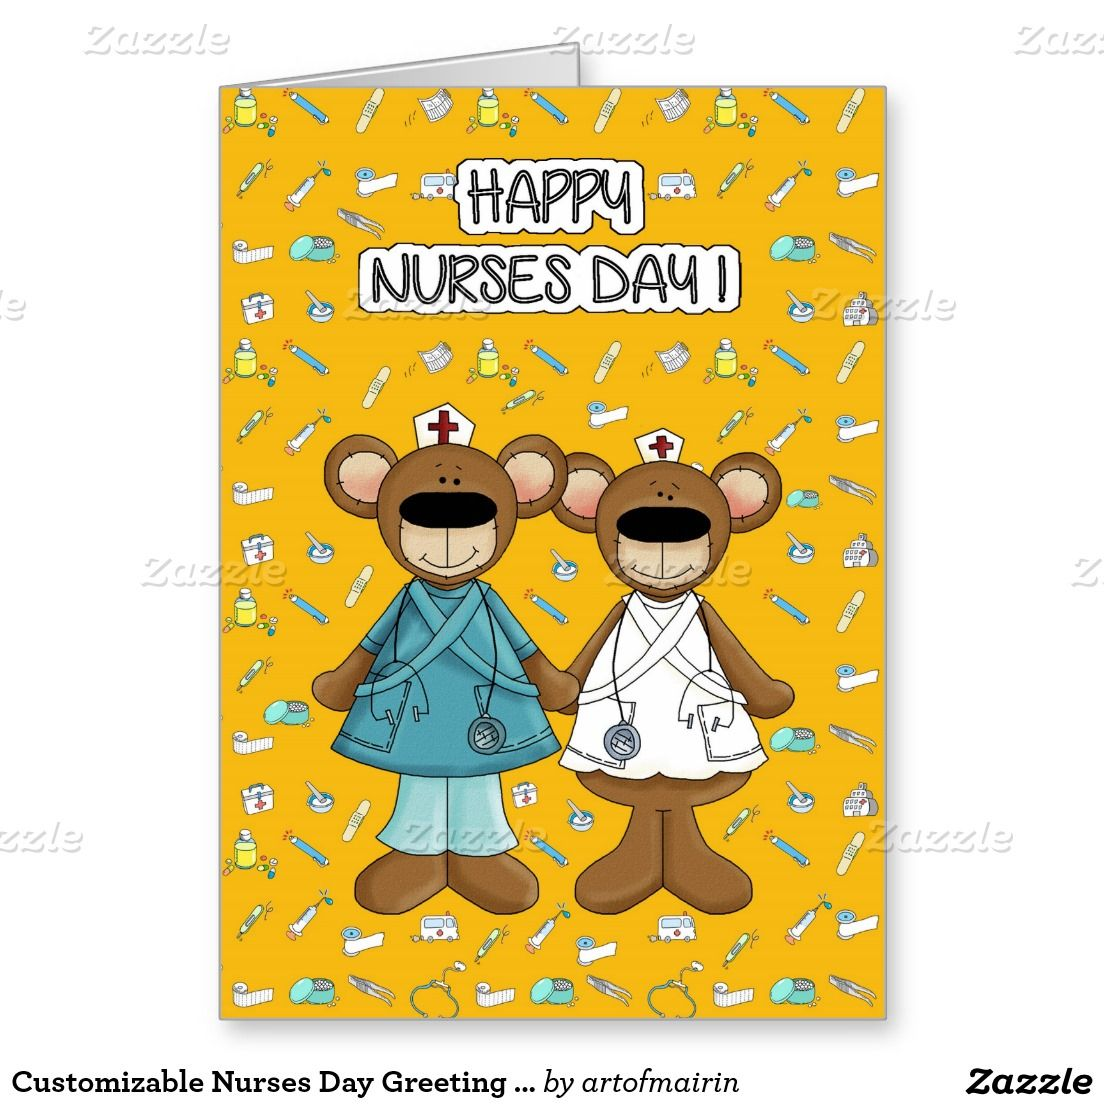 Happy nurses day funny teddy bears personalized greeting cards happy nurses day funny teddy bears personalized greeting cards matching cards in various languages postage stamps and other products available in the m4hsunfo Image collections